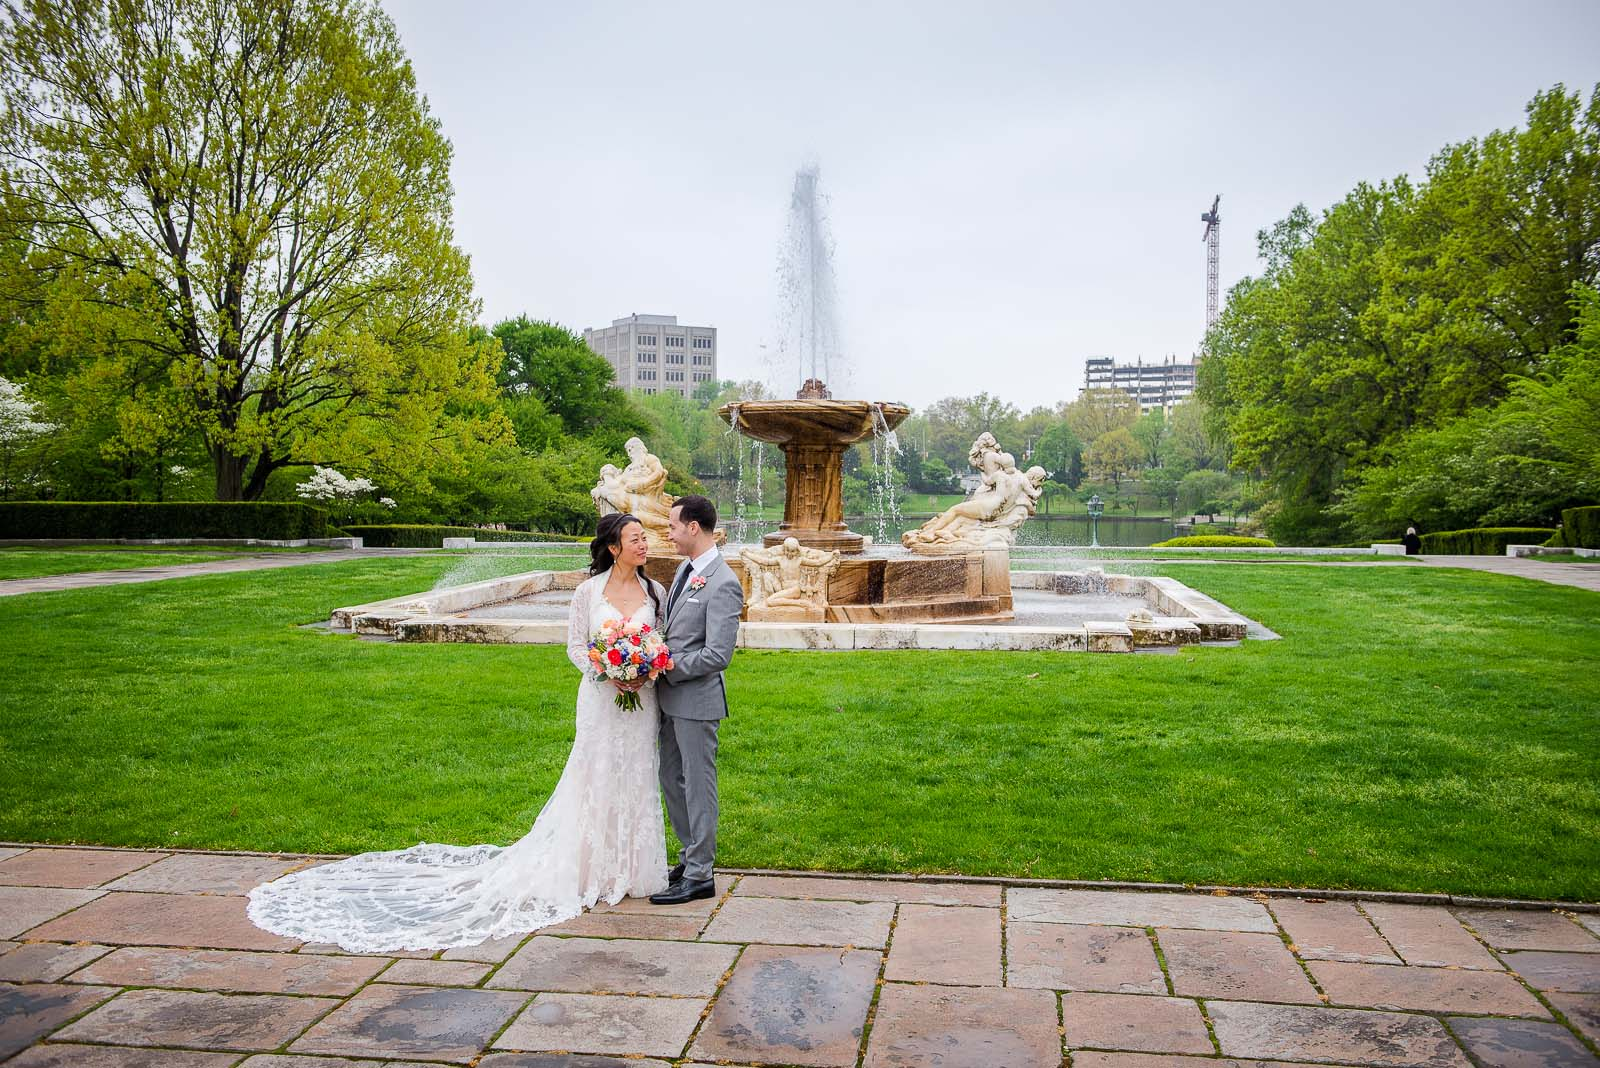 Eric_and_Christy_Photography_Blog_Wedding_Anne_Michael-14